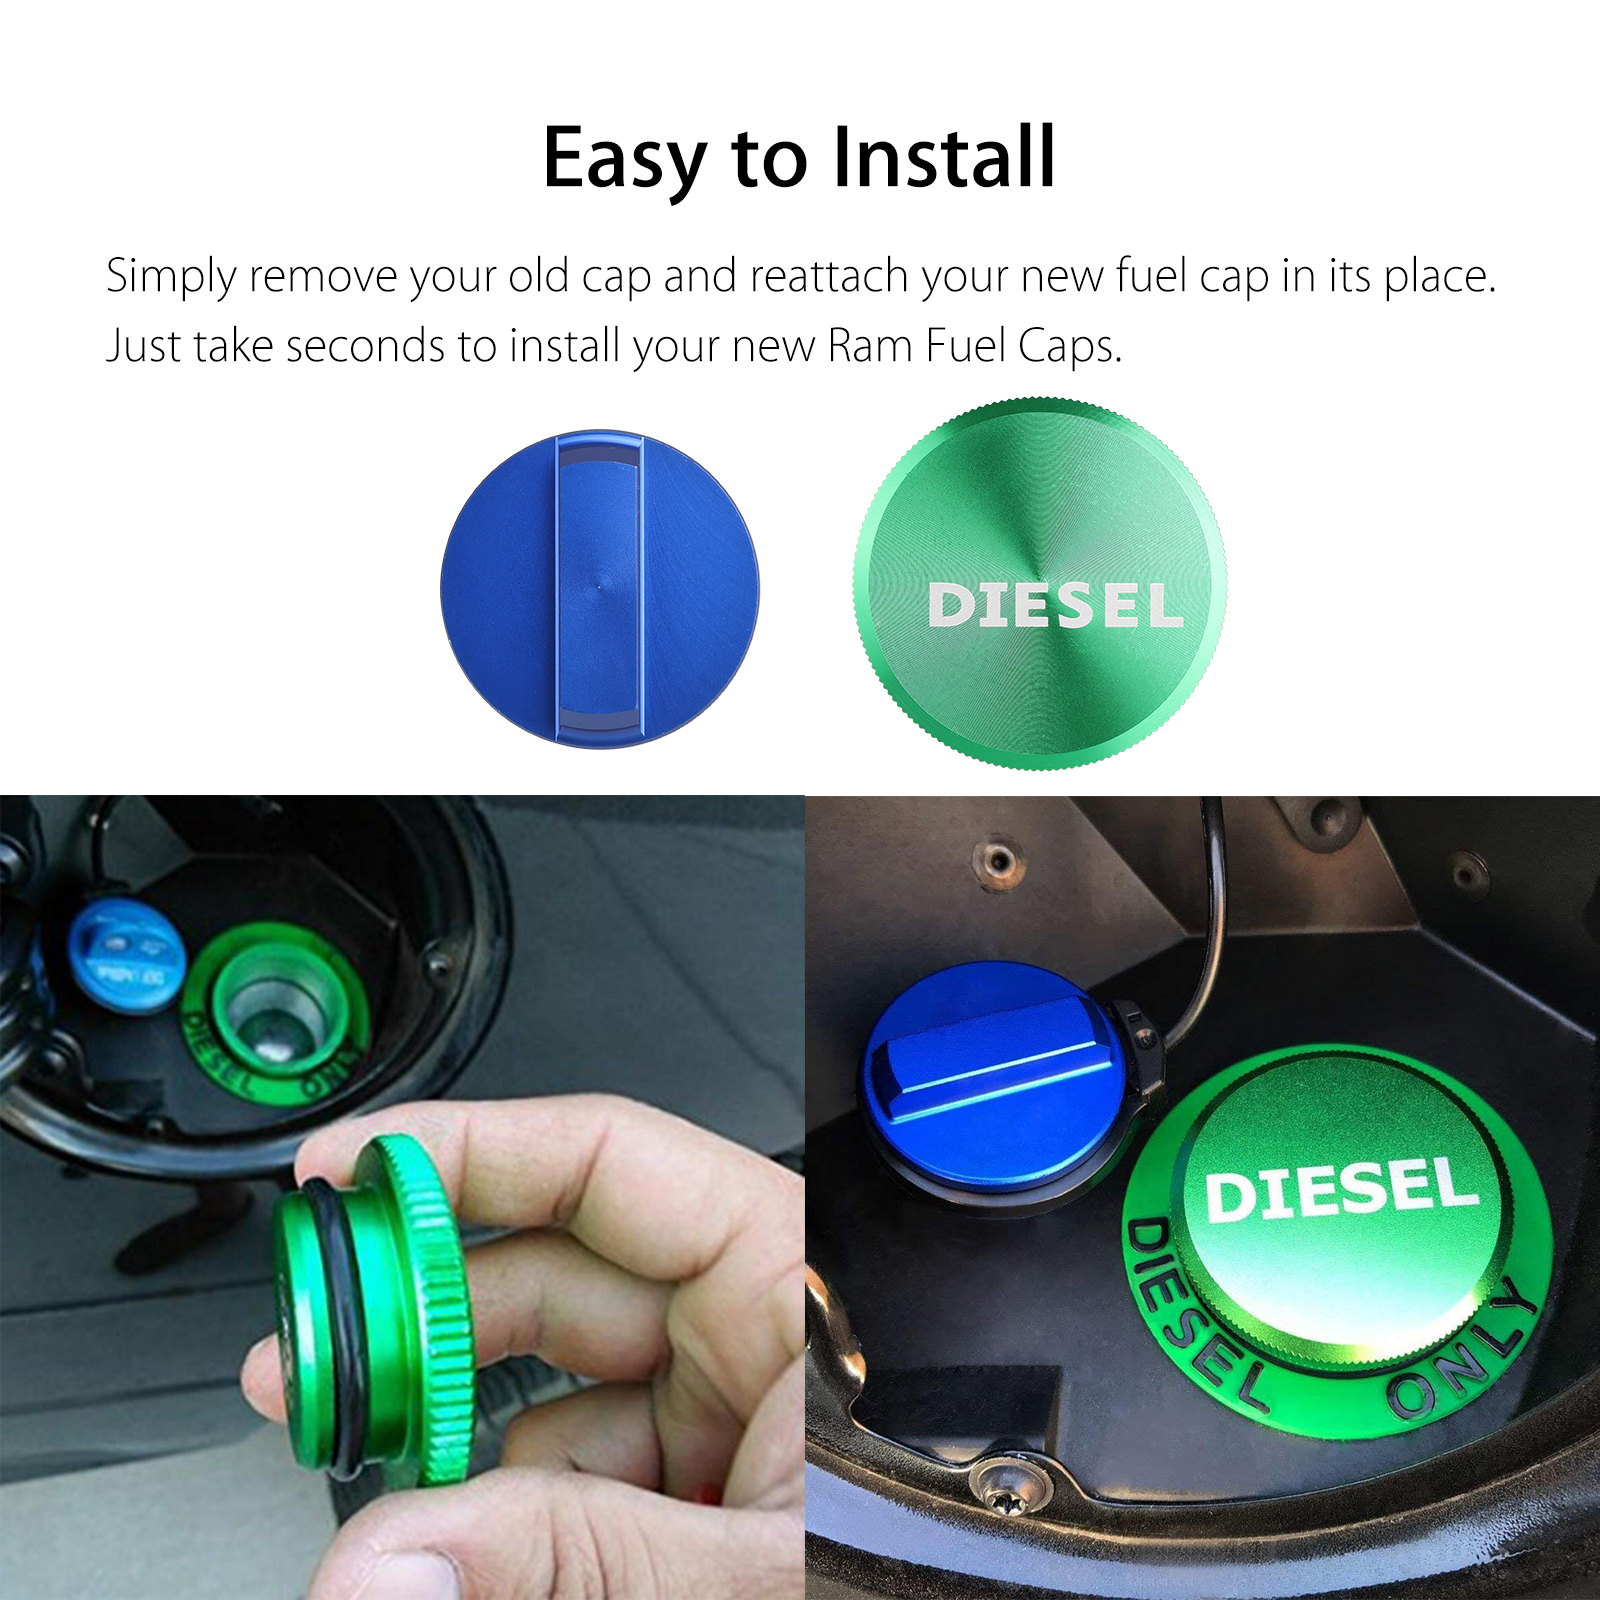 Easy Grip DEF Cap Accessory for 2013-2018 Dodge RAM Truck 1500 2500 3500 with 6.7 Cummins EcoDiesel Combo Pack Magnetic Diesel Fuel Cap